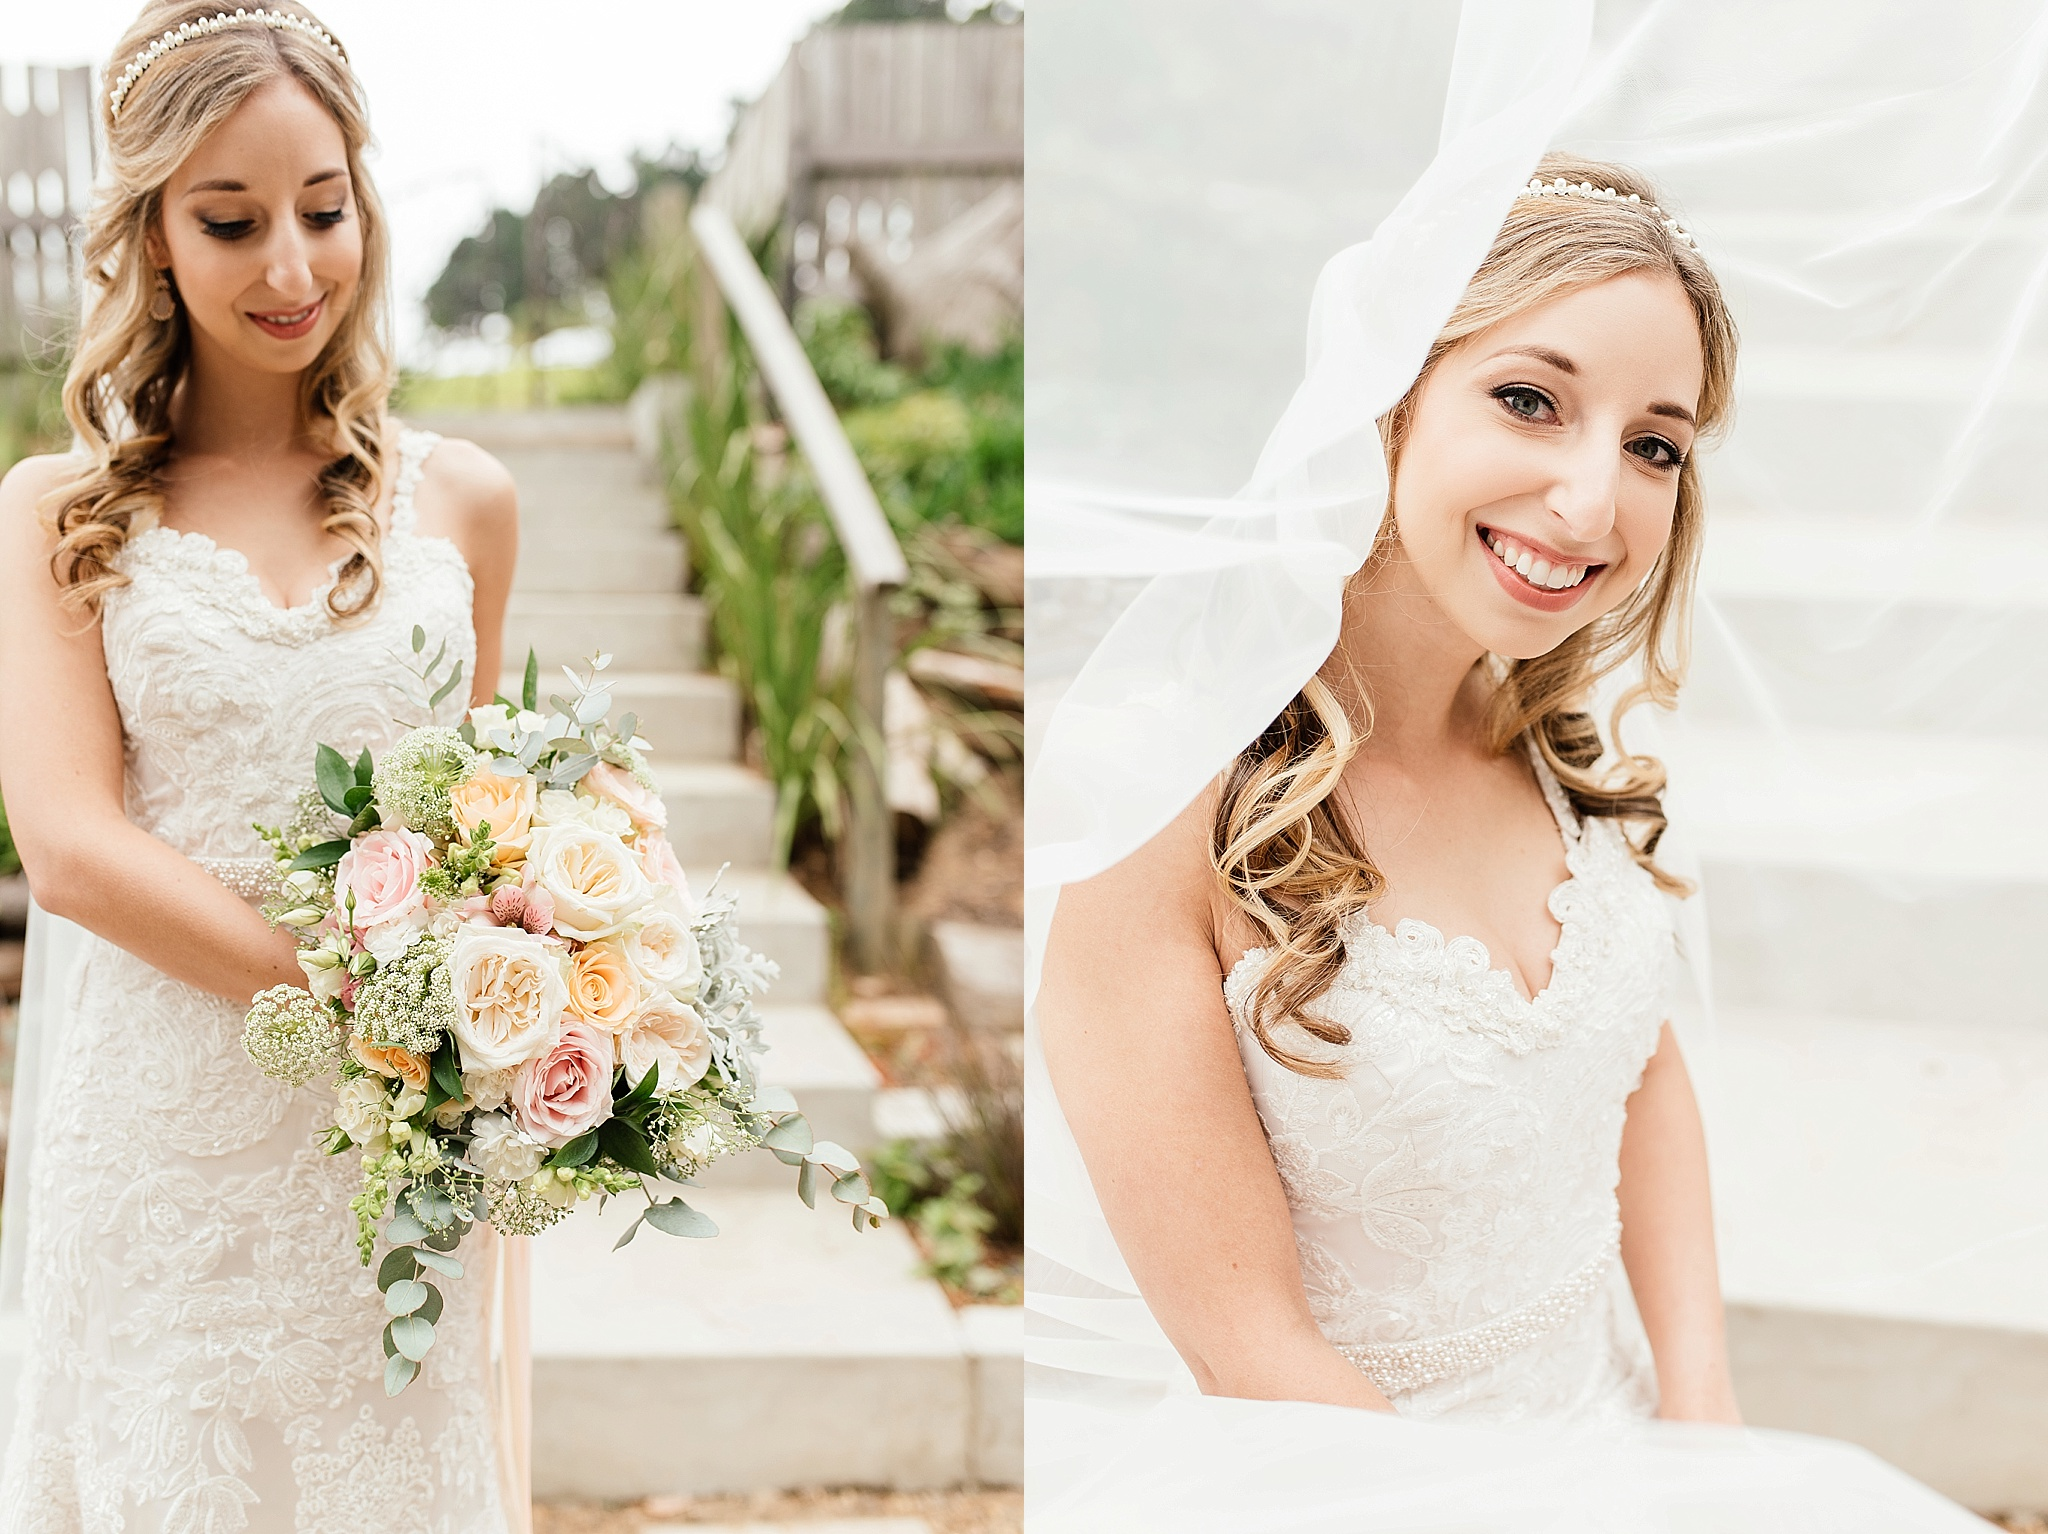 Cape Town Wedding Photographer Darren Bester - SuikerBossie - Stephen and Mikaela_0014.jpg